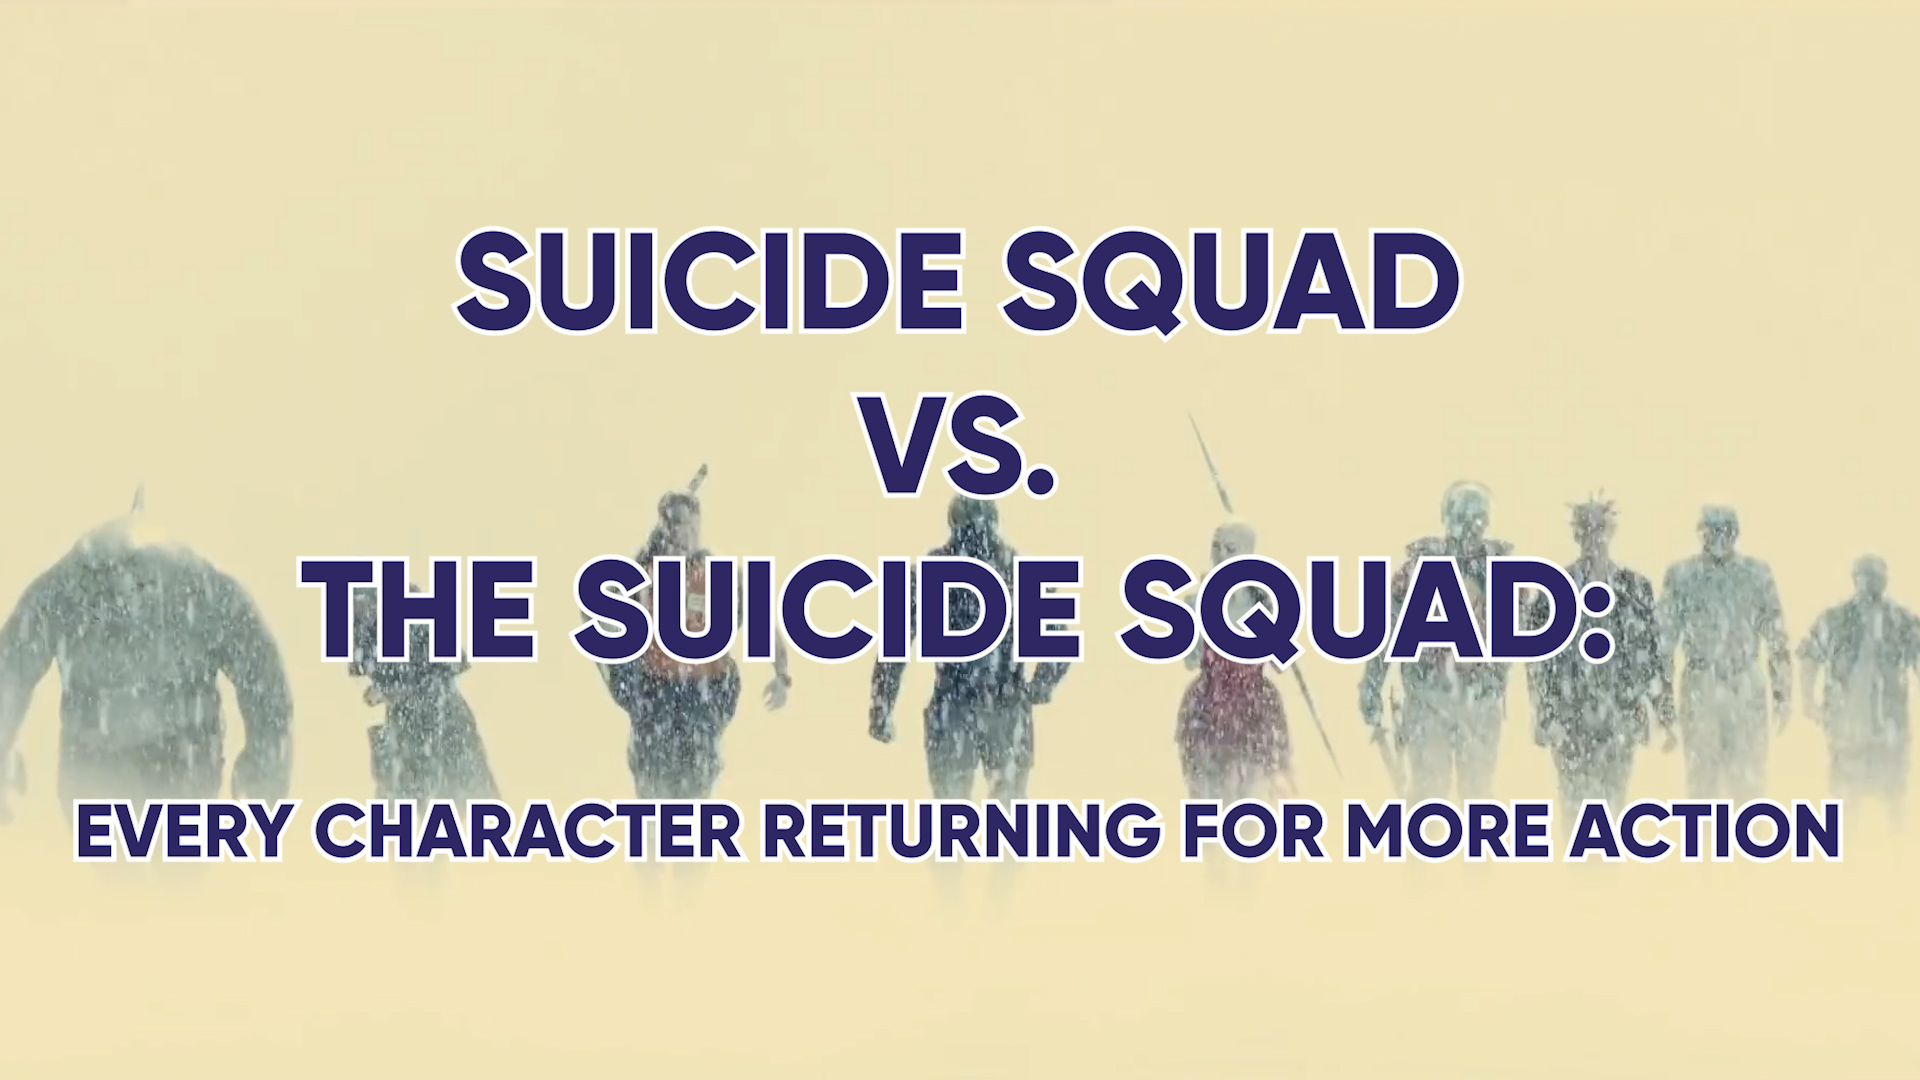 Suicide Squad Vs. The Suicide Squad: Every Character Returning